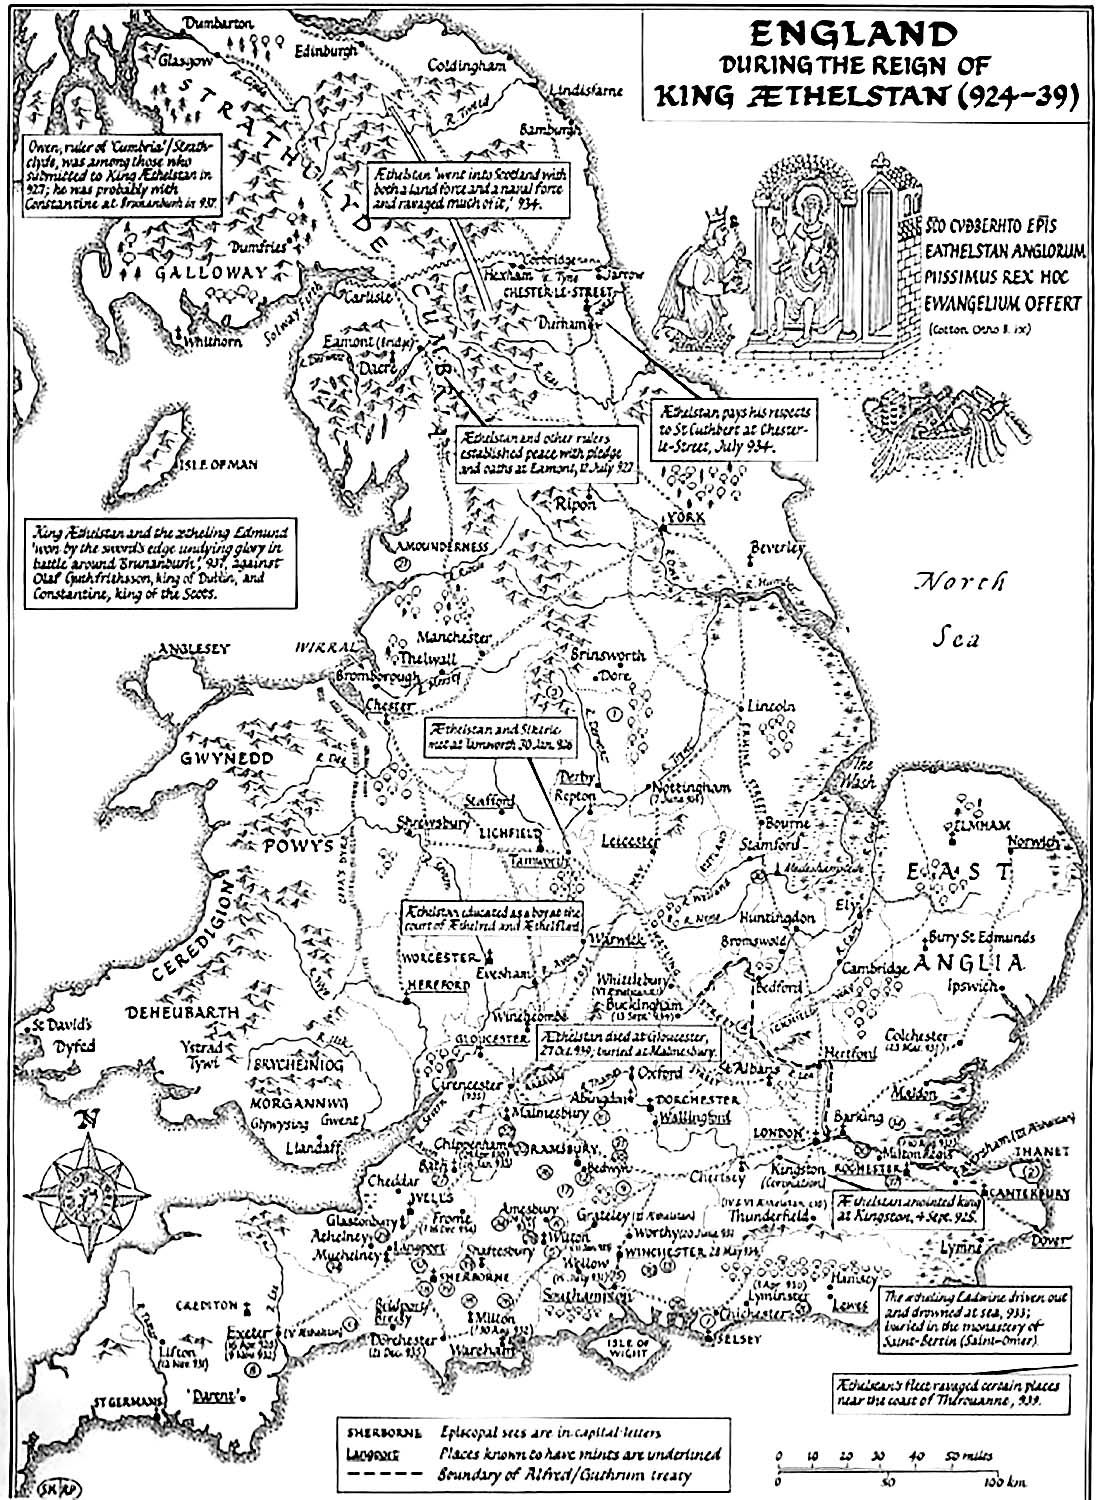 England during the reign o King Aethelstan, early 10th century ... on counties in england, norwich england, hull england, newcastle england, reading england, northumberland england, cumbria england, norfolk england, world map england, wessex england, sunderland england, lincolnshire england, blackpool england, cornwall england, leeds england, broadchurch england, hastings england, castles in england, wiltshire england, surrey england,